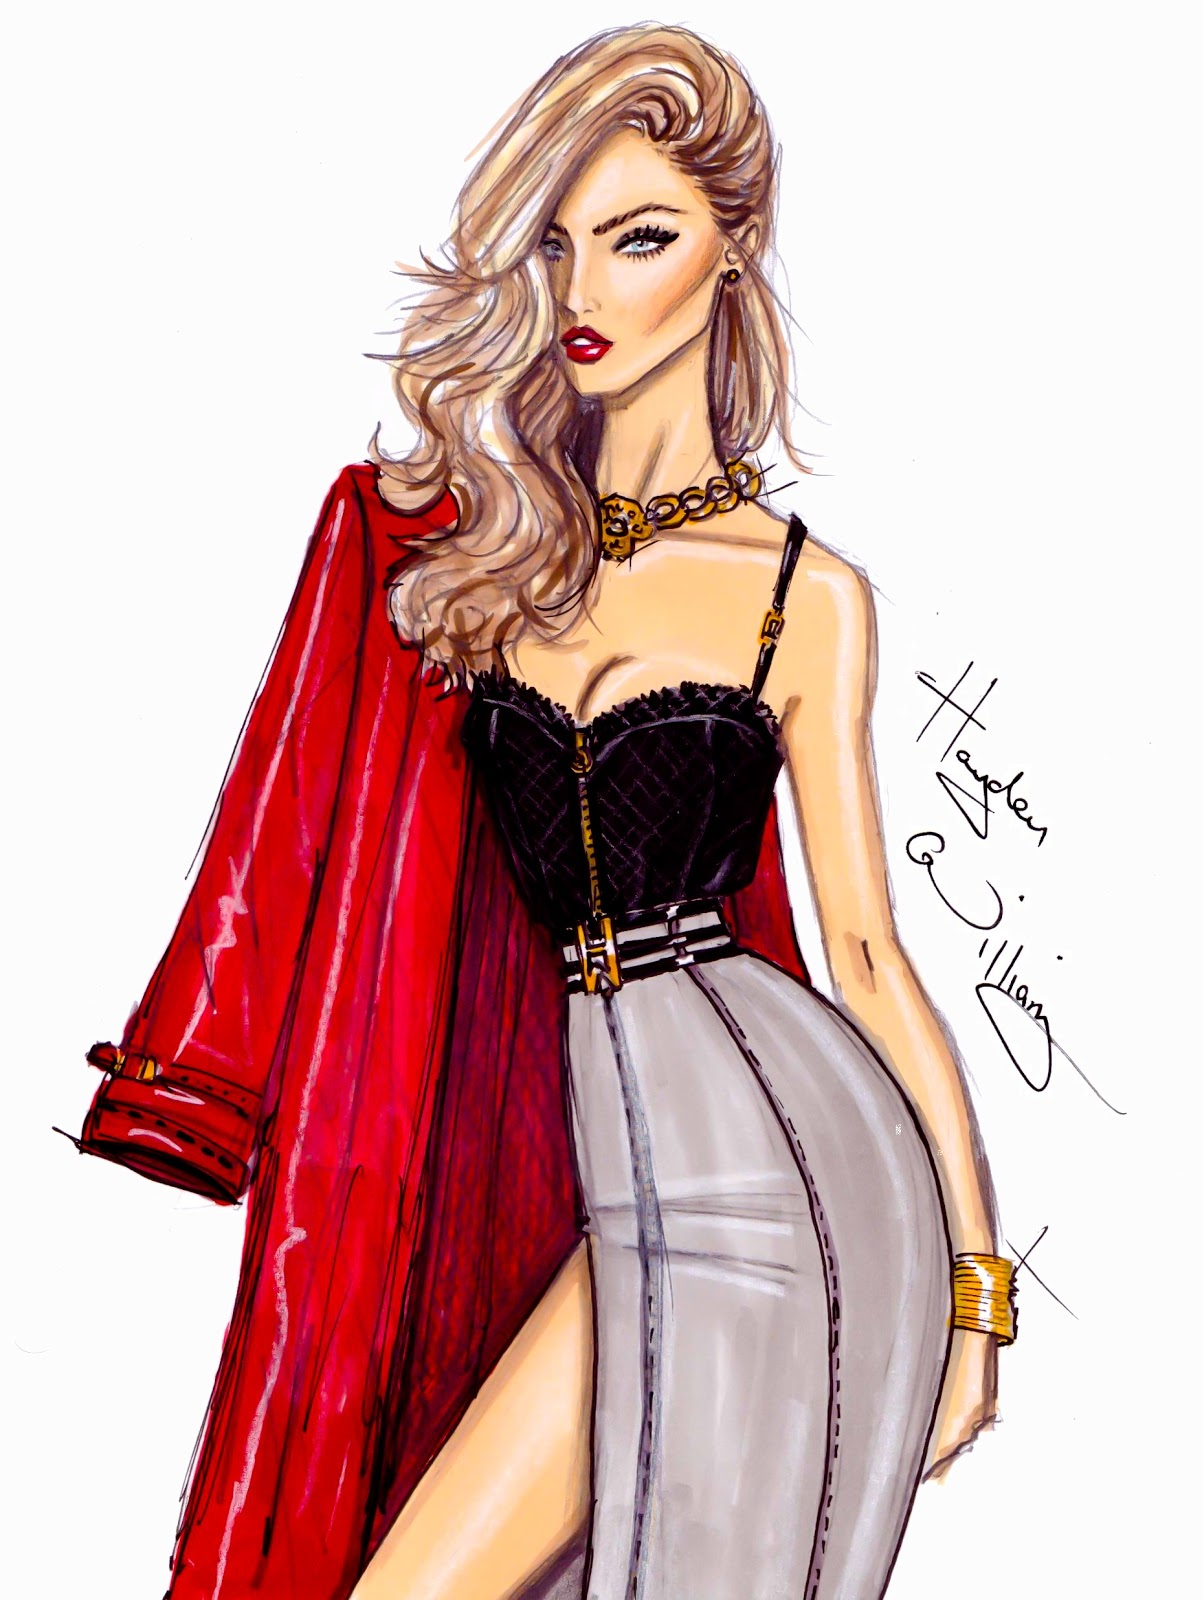 Excited too cute girl drawings fashion think, that